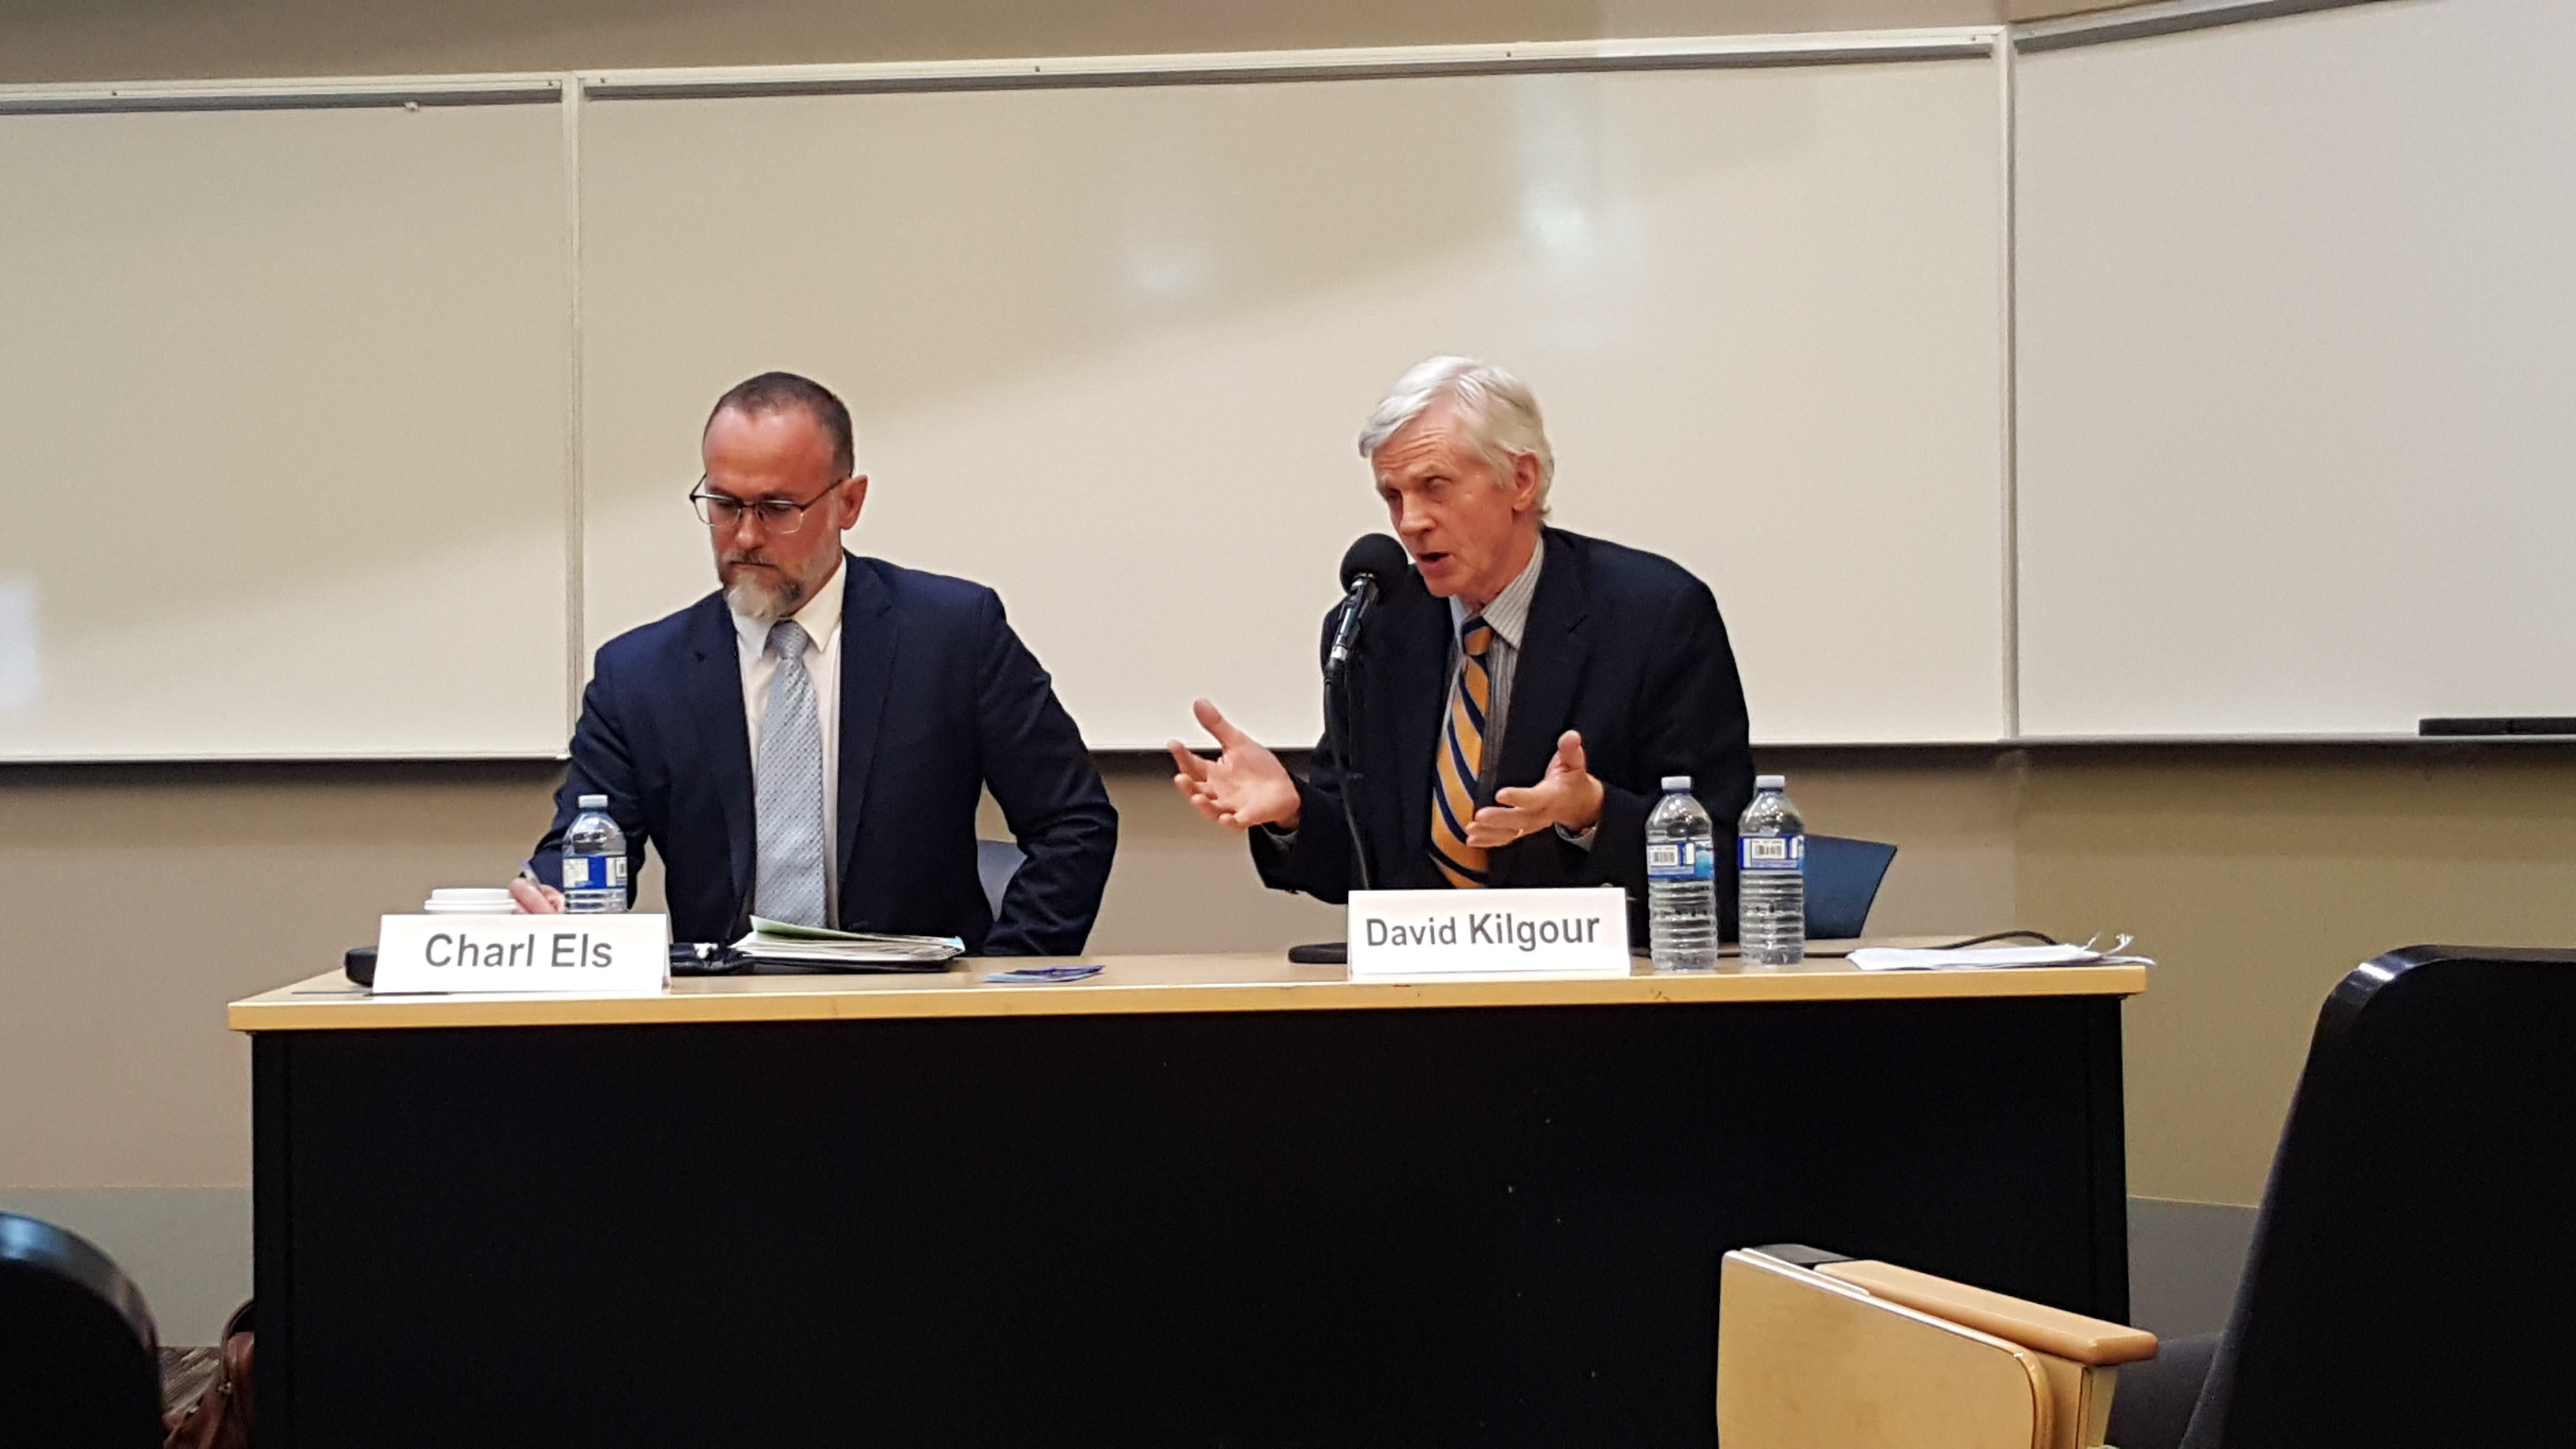 Dr. Charl Els (L), associate professor at the University of Alberta's department of psychiatry and the John Dossetor Health Ethics Centre, and David Kilgour, former Edmonton MP and secretary of state for Asia-Pacific, take part in a panel discussion following the screening of